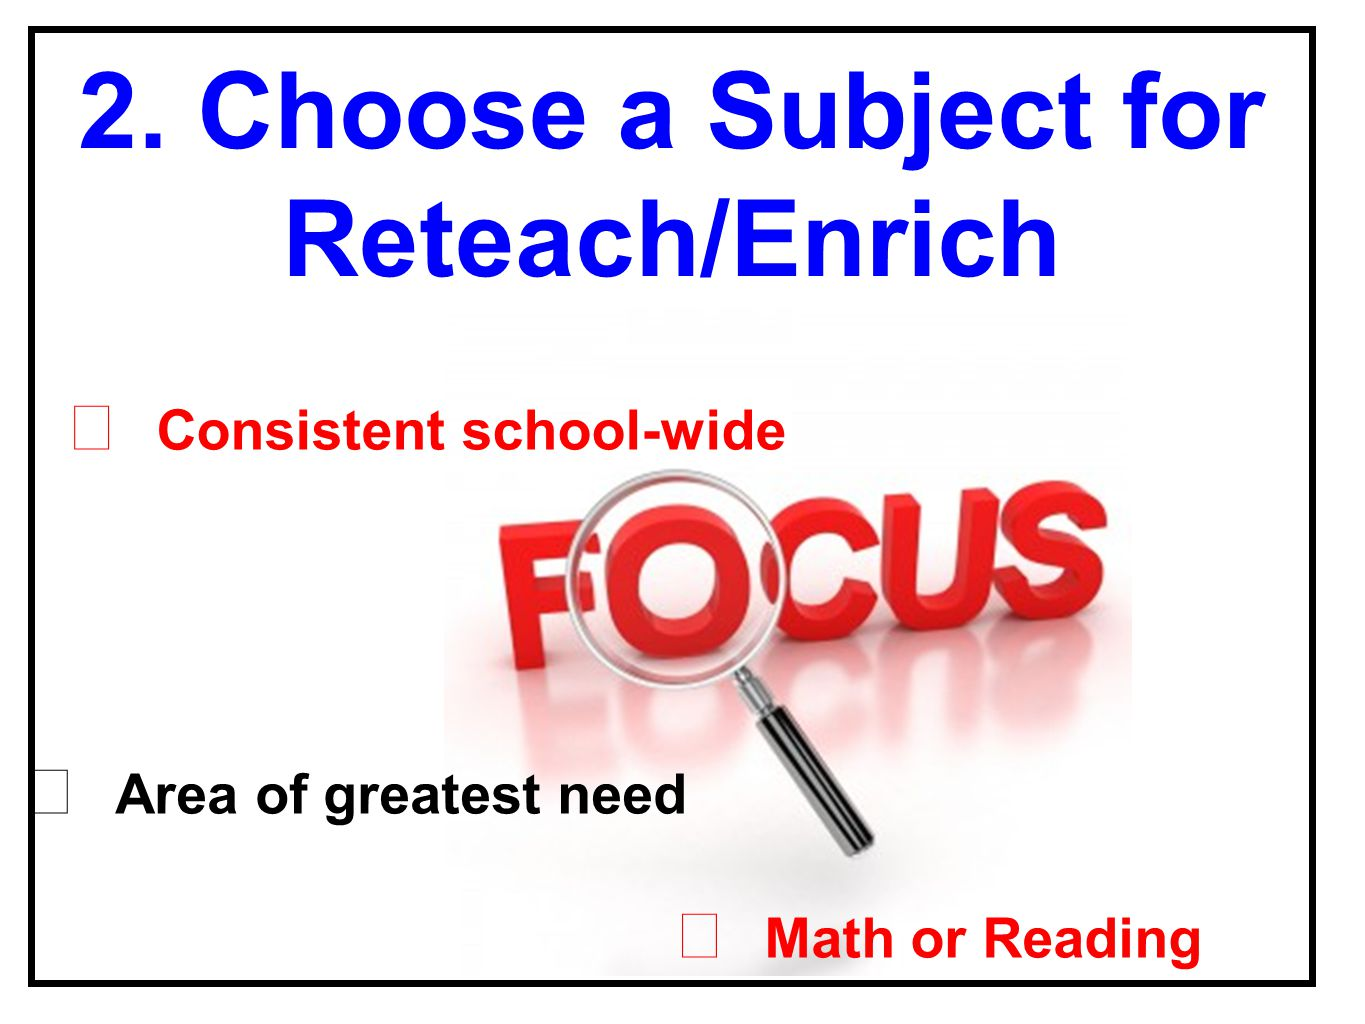 ★ Math or Reading ★ Consistent school-wide 2. Choose a Subject for Reteach/Enrich ★ Area of greatest need